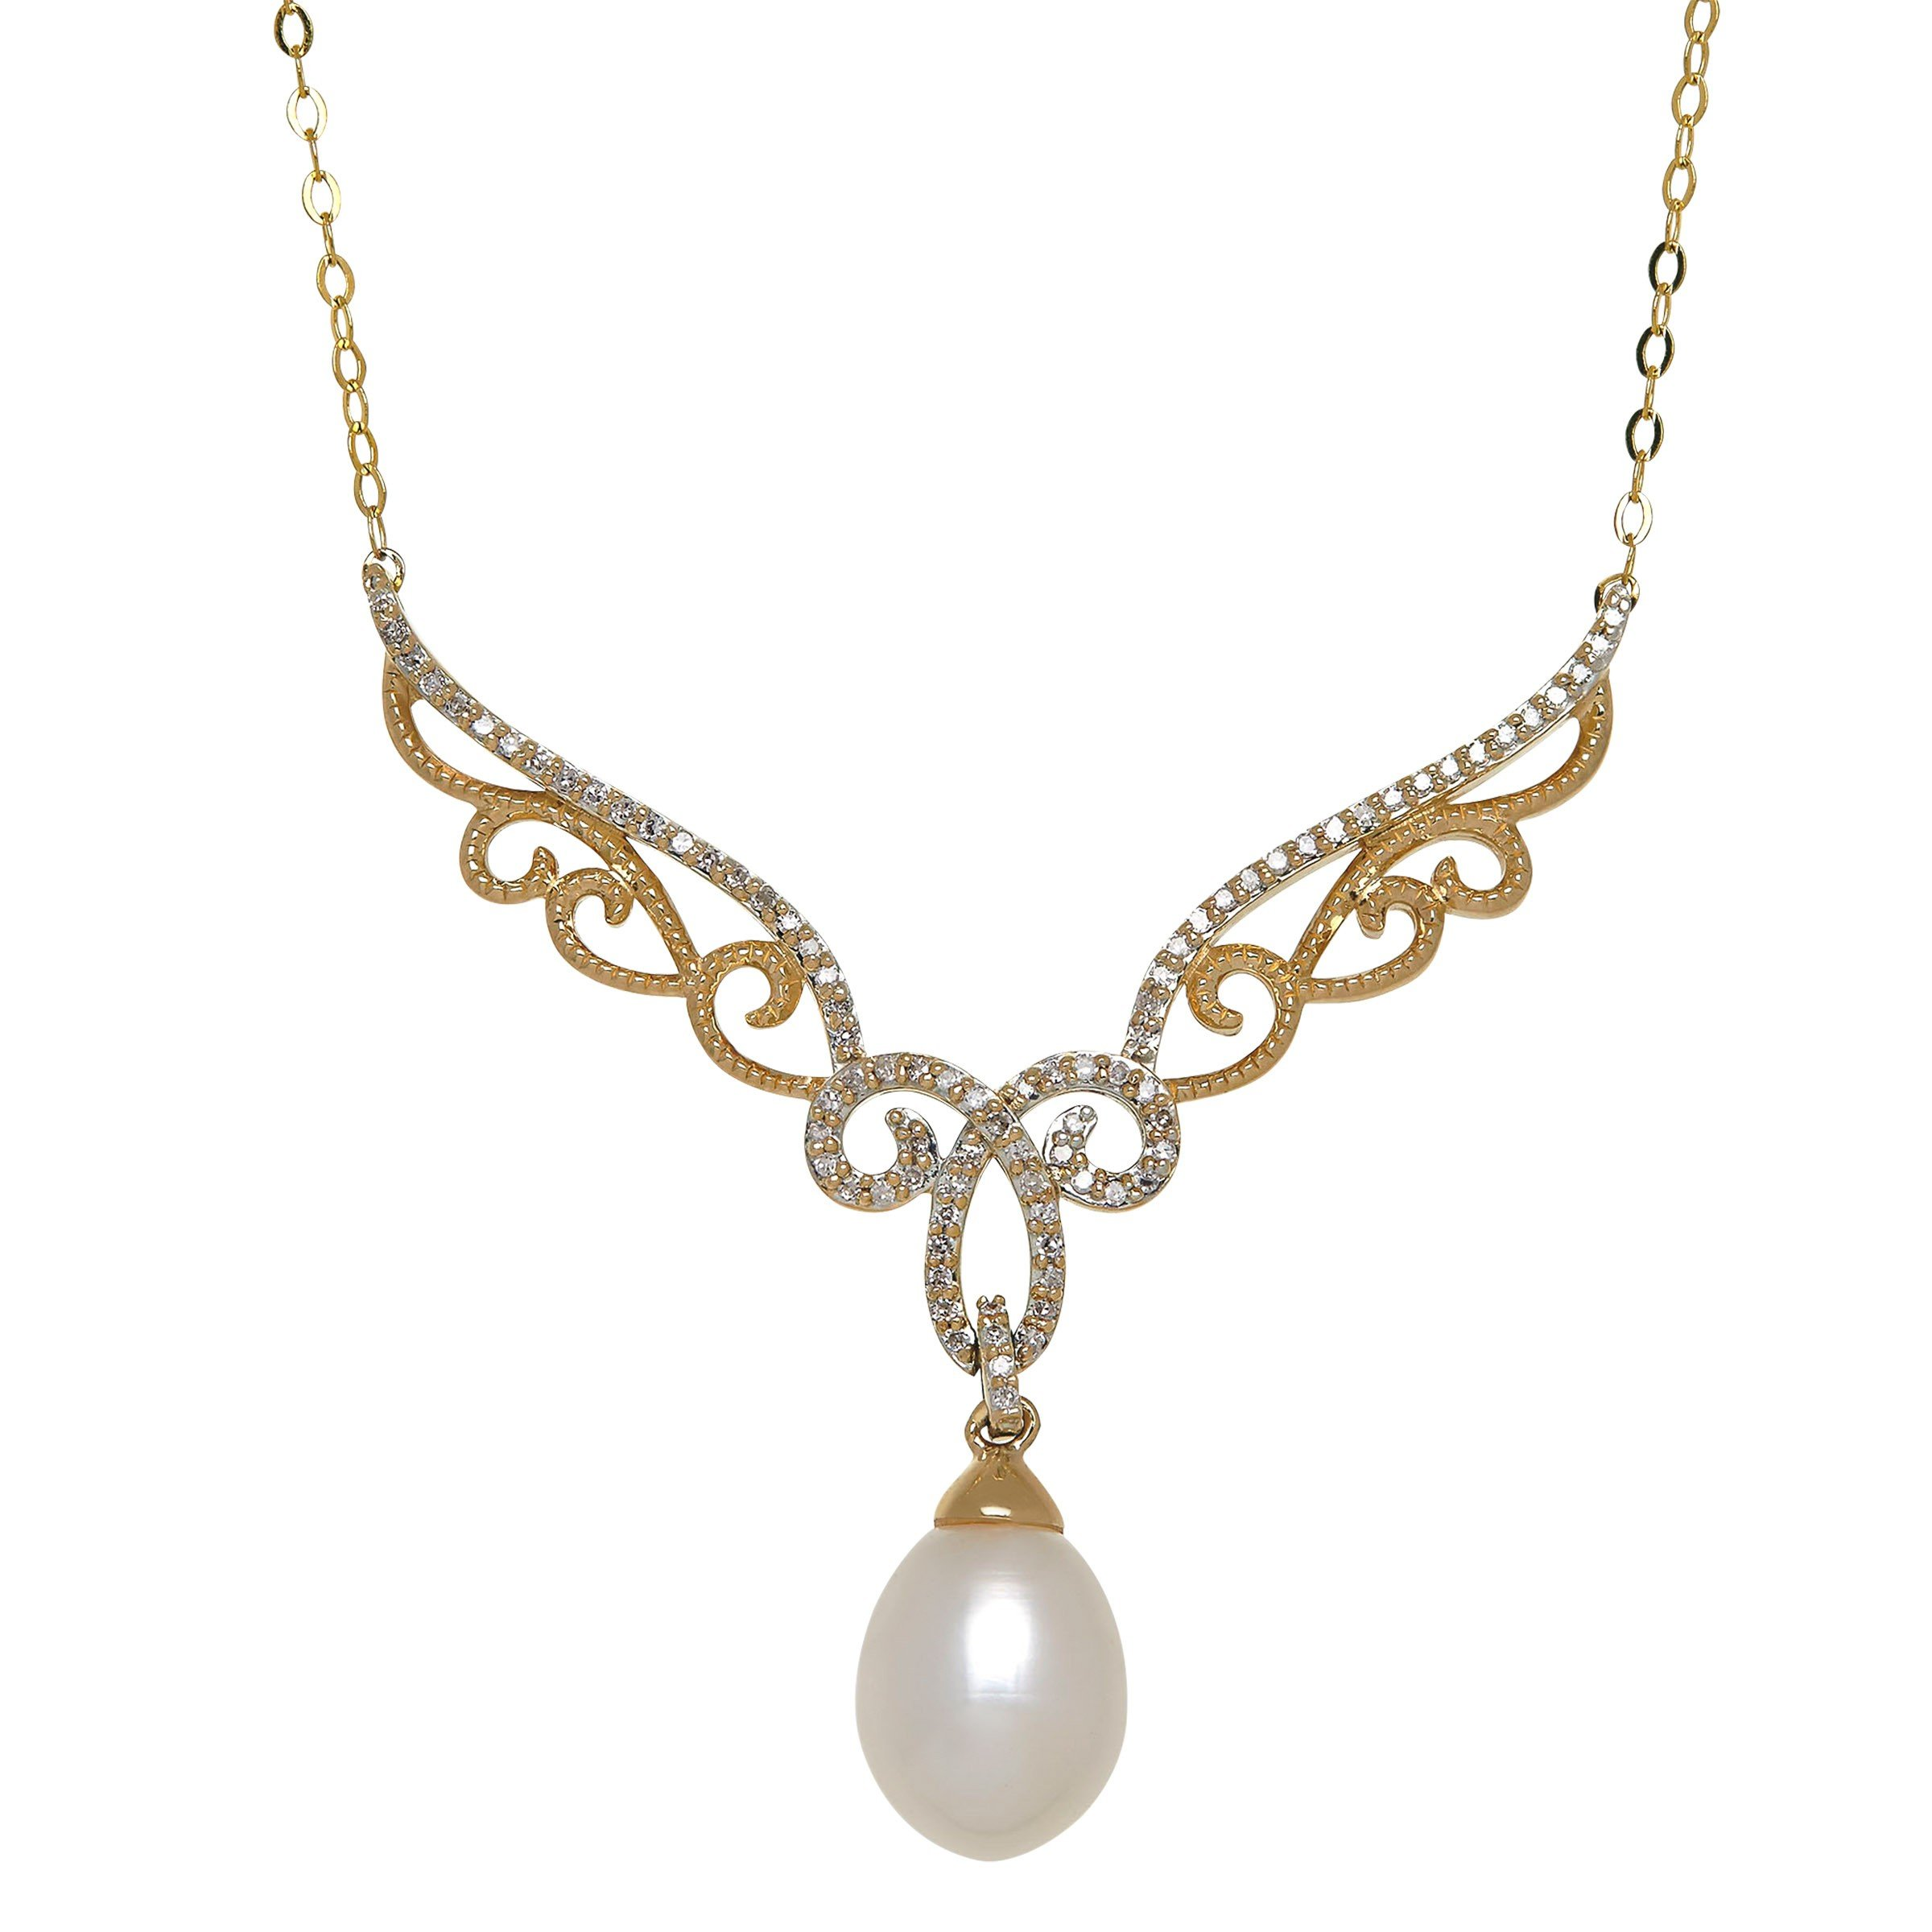 Freshwater Cultured Pearl & 1/5 ct Diamond Filigree Garland Necklace in 14K Gold